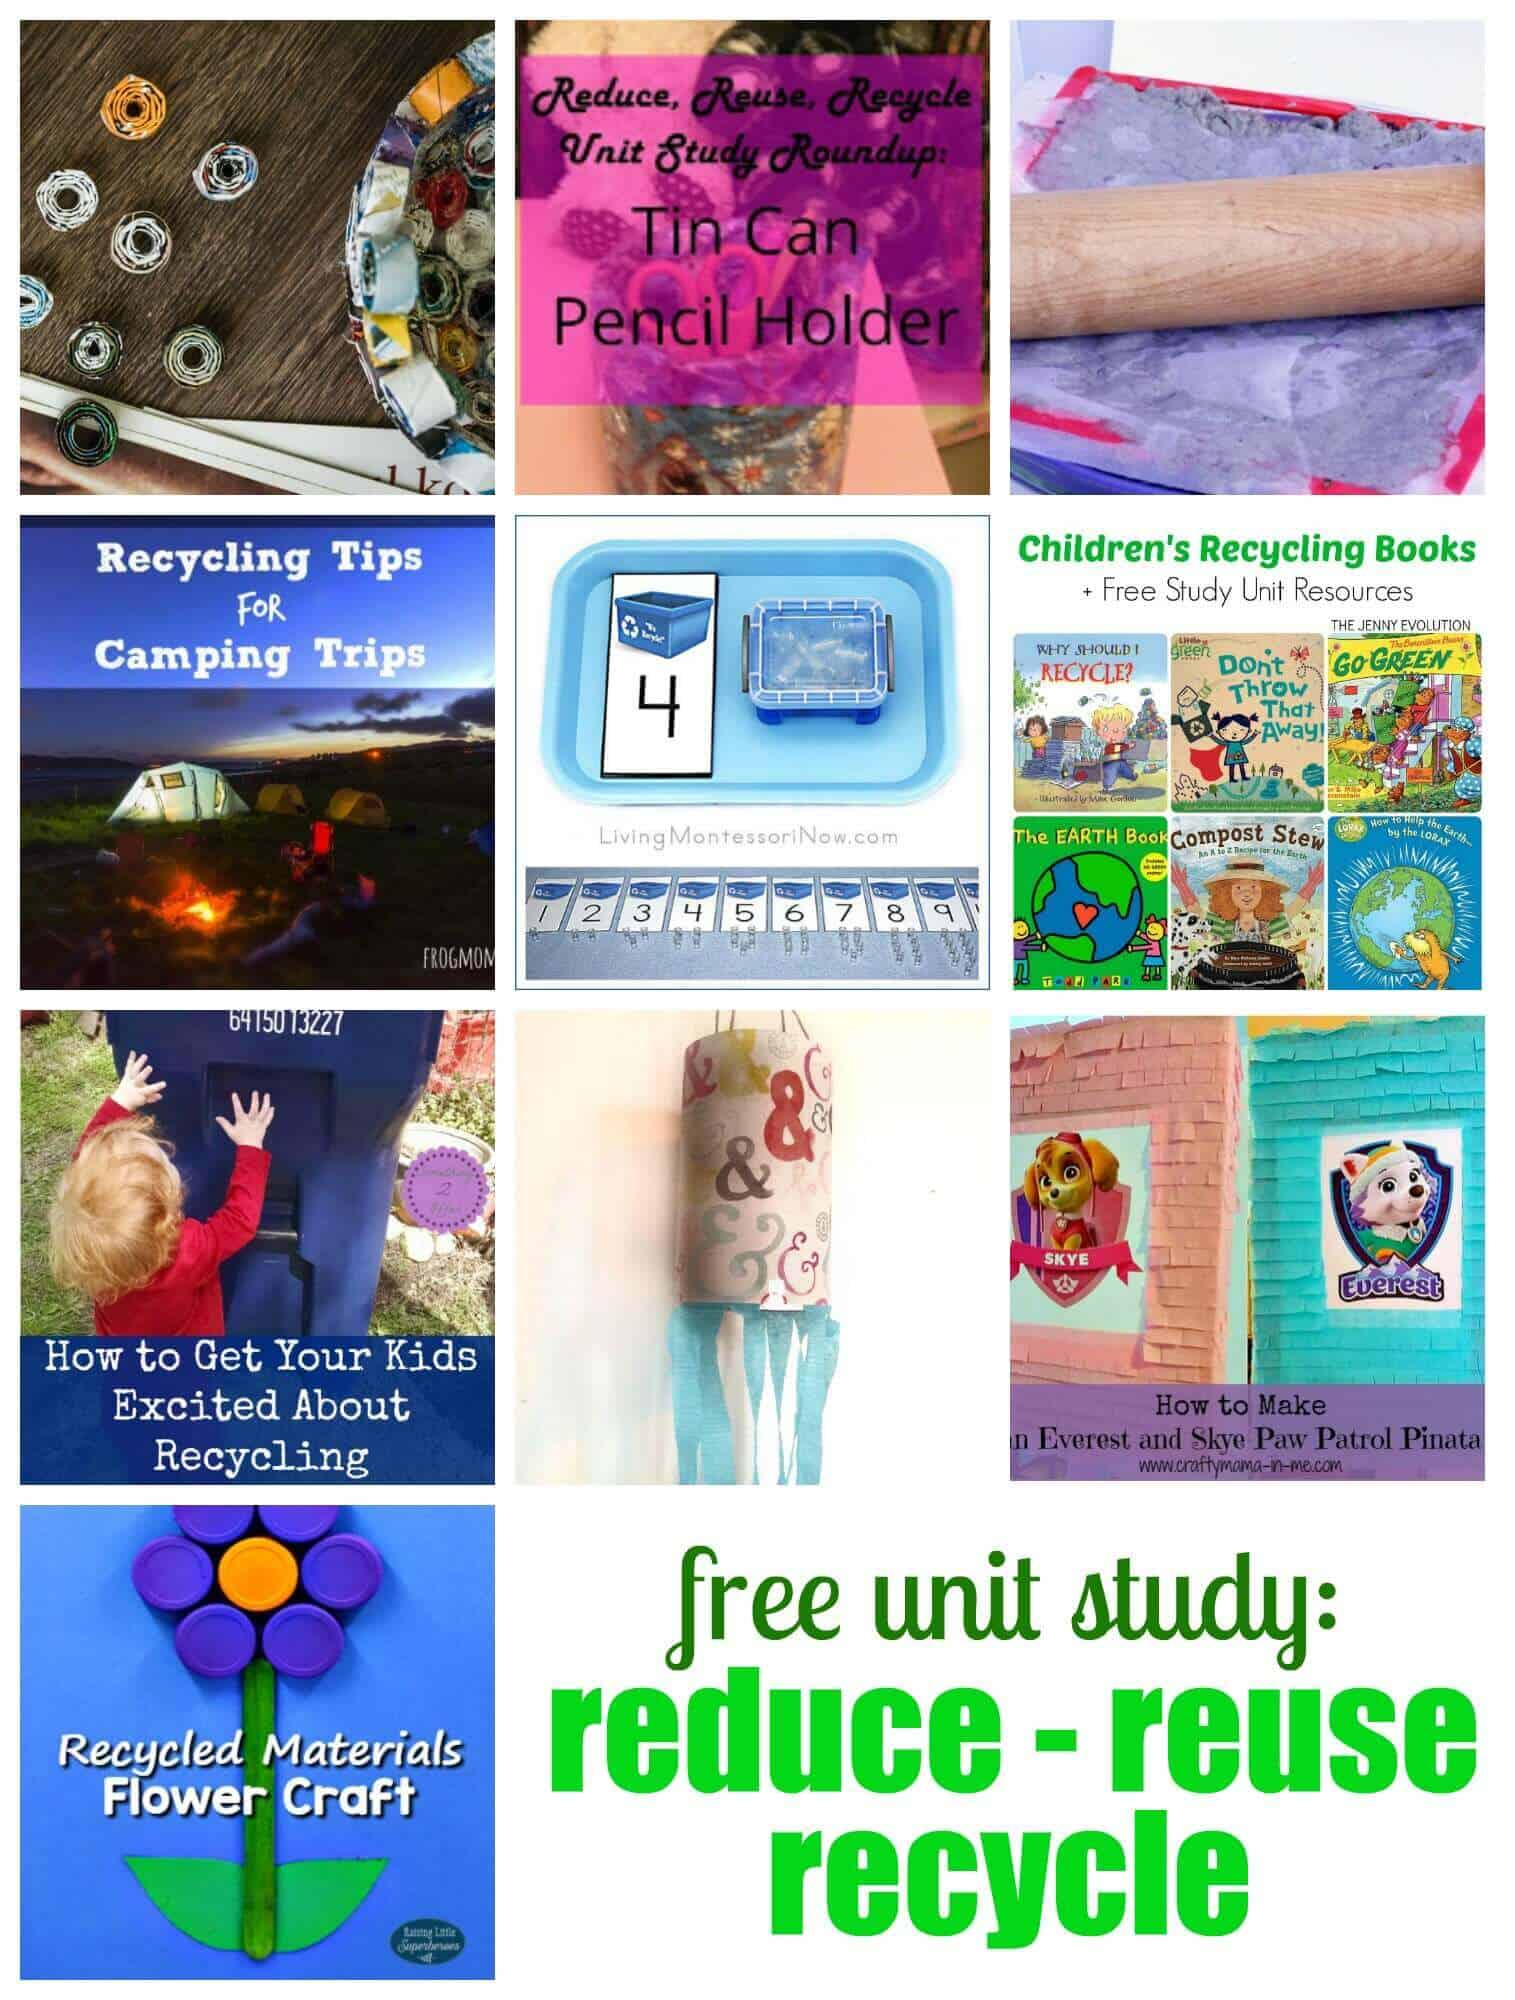 Simple fun recycled magazine crafts for the family the for Reduce reuse recycle crafts